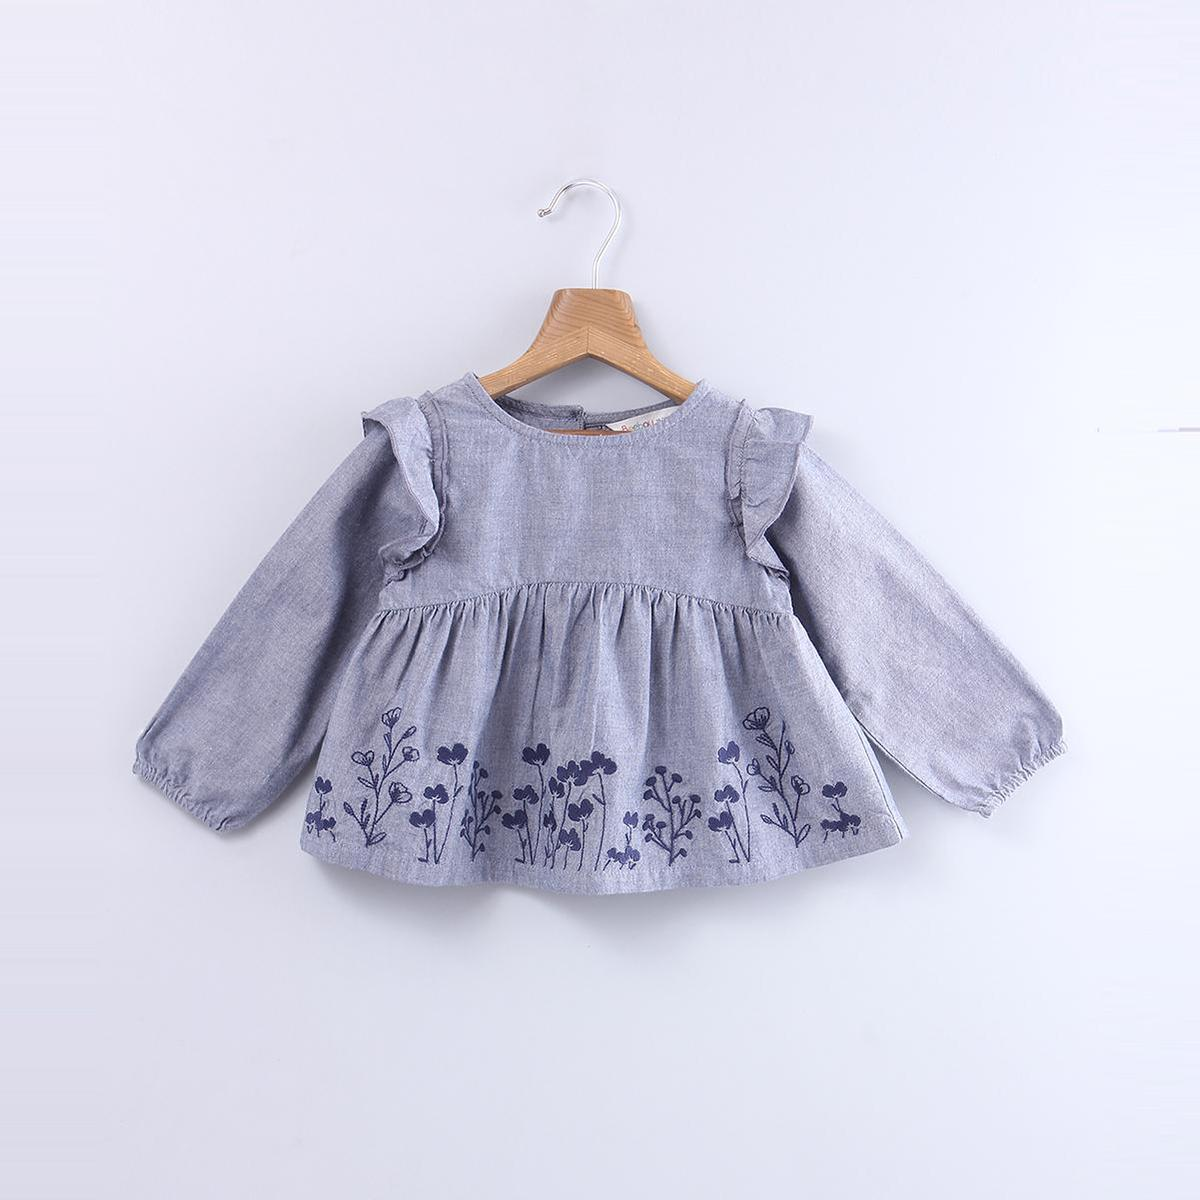 Beebay - Grey Colored Floral Embroidered Chambray Cotton Top For Kids Girls